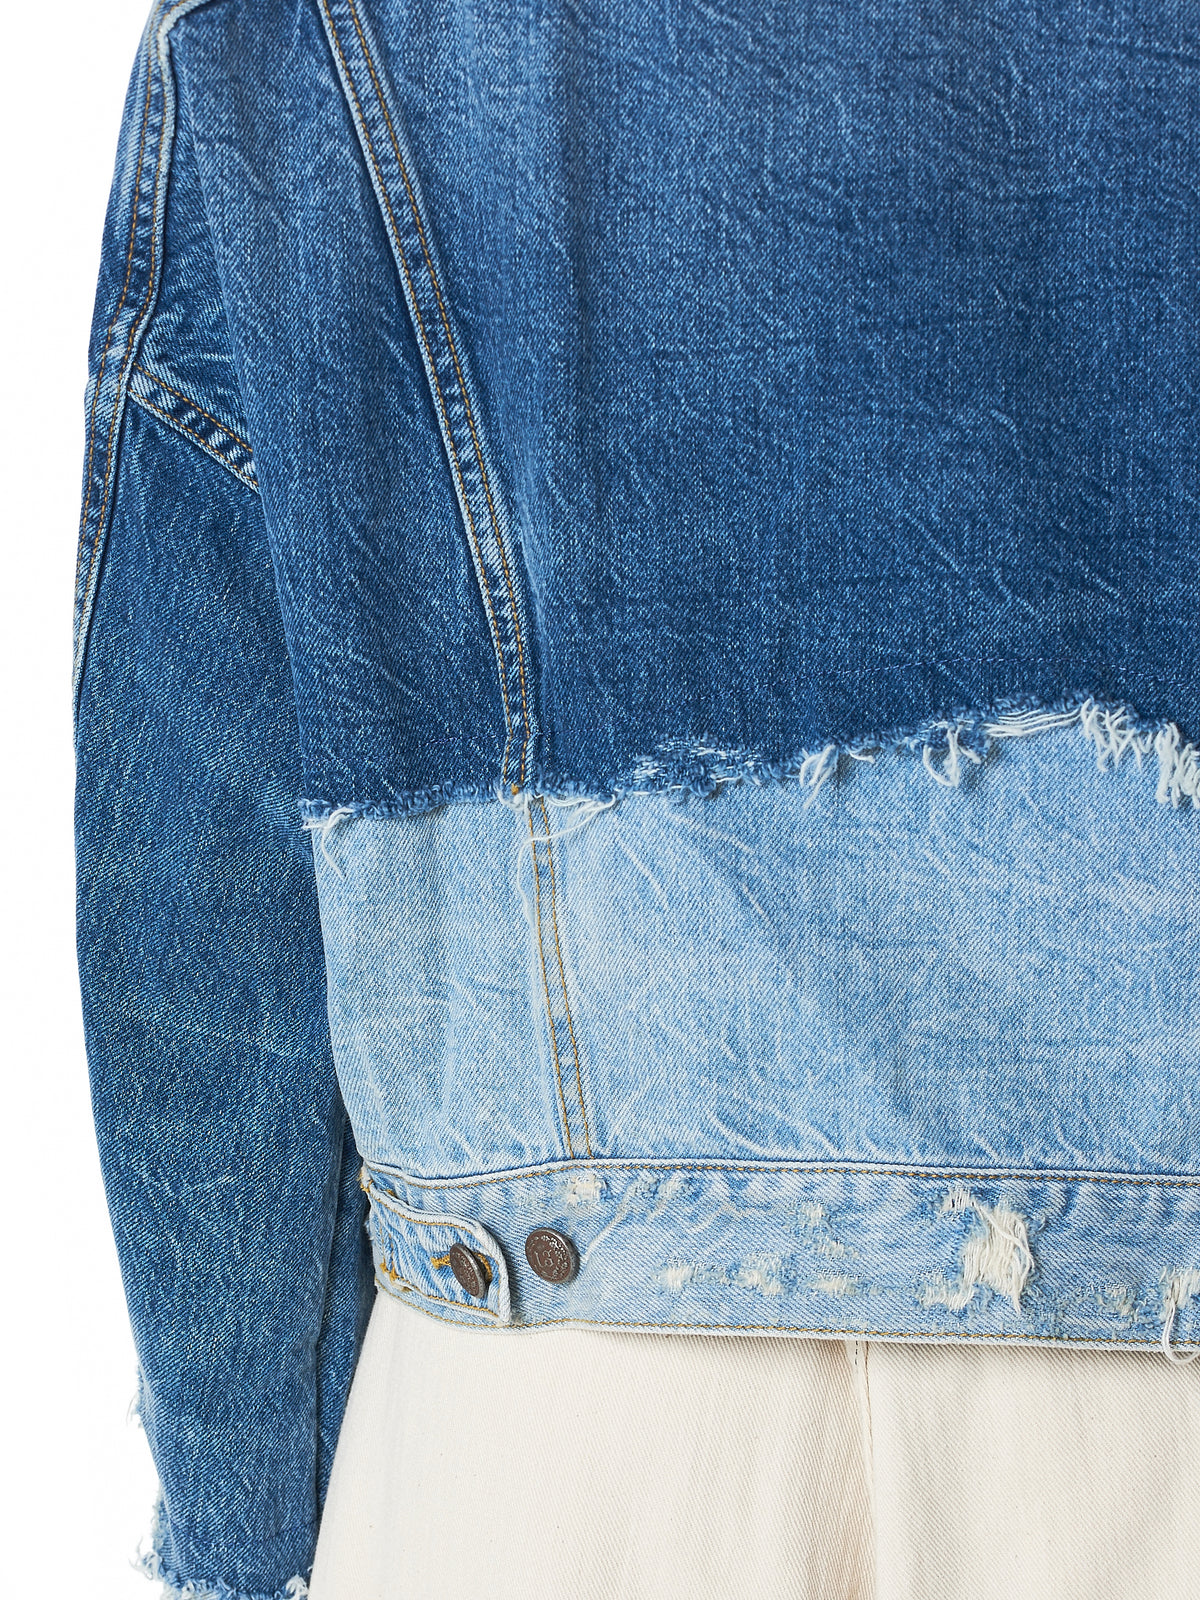 R13 Denim Jacket - Hlorenzo Detail 2